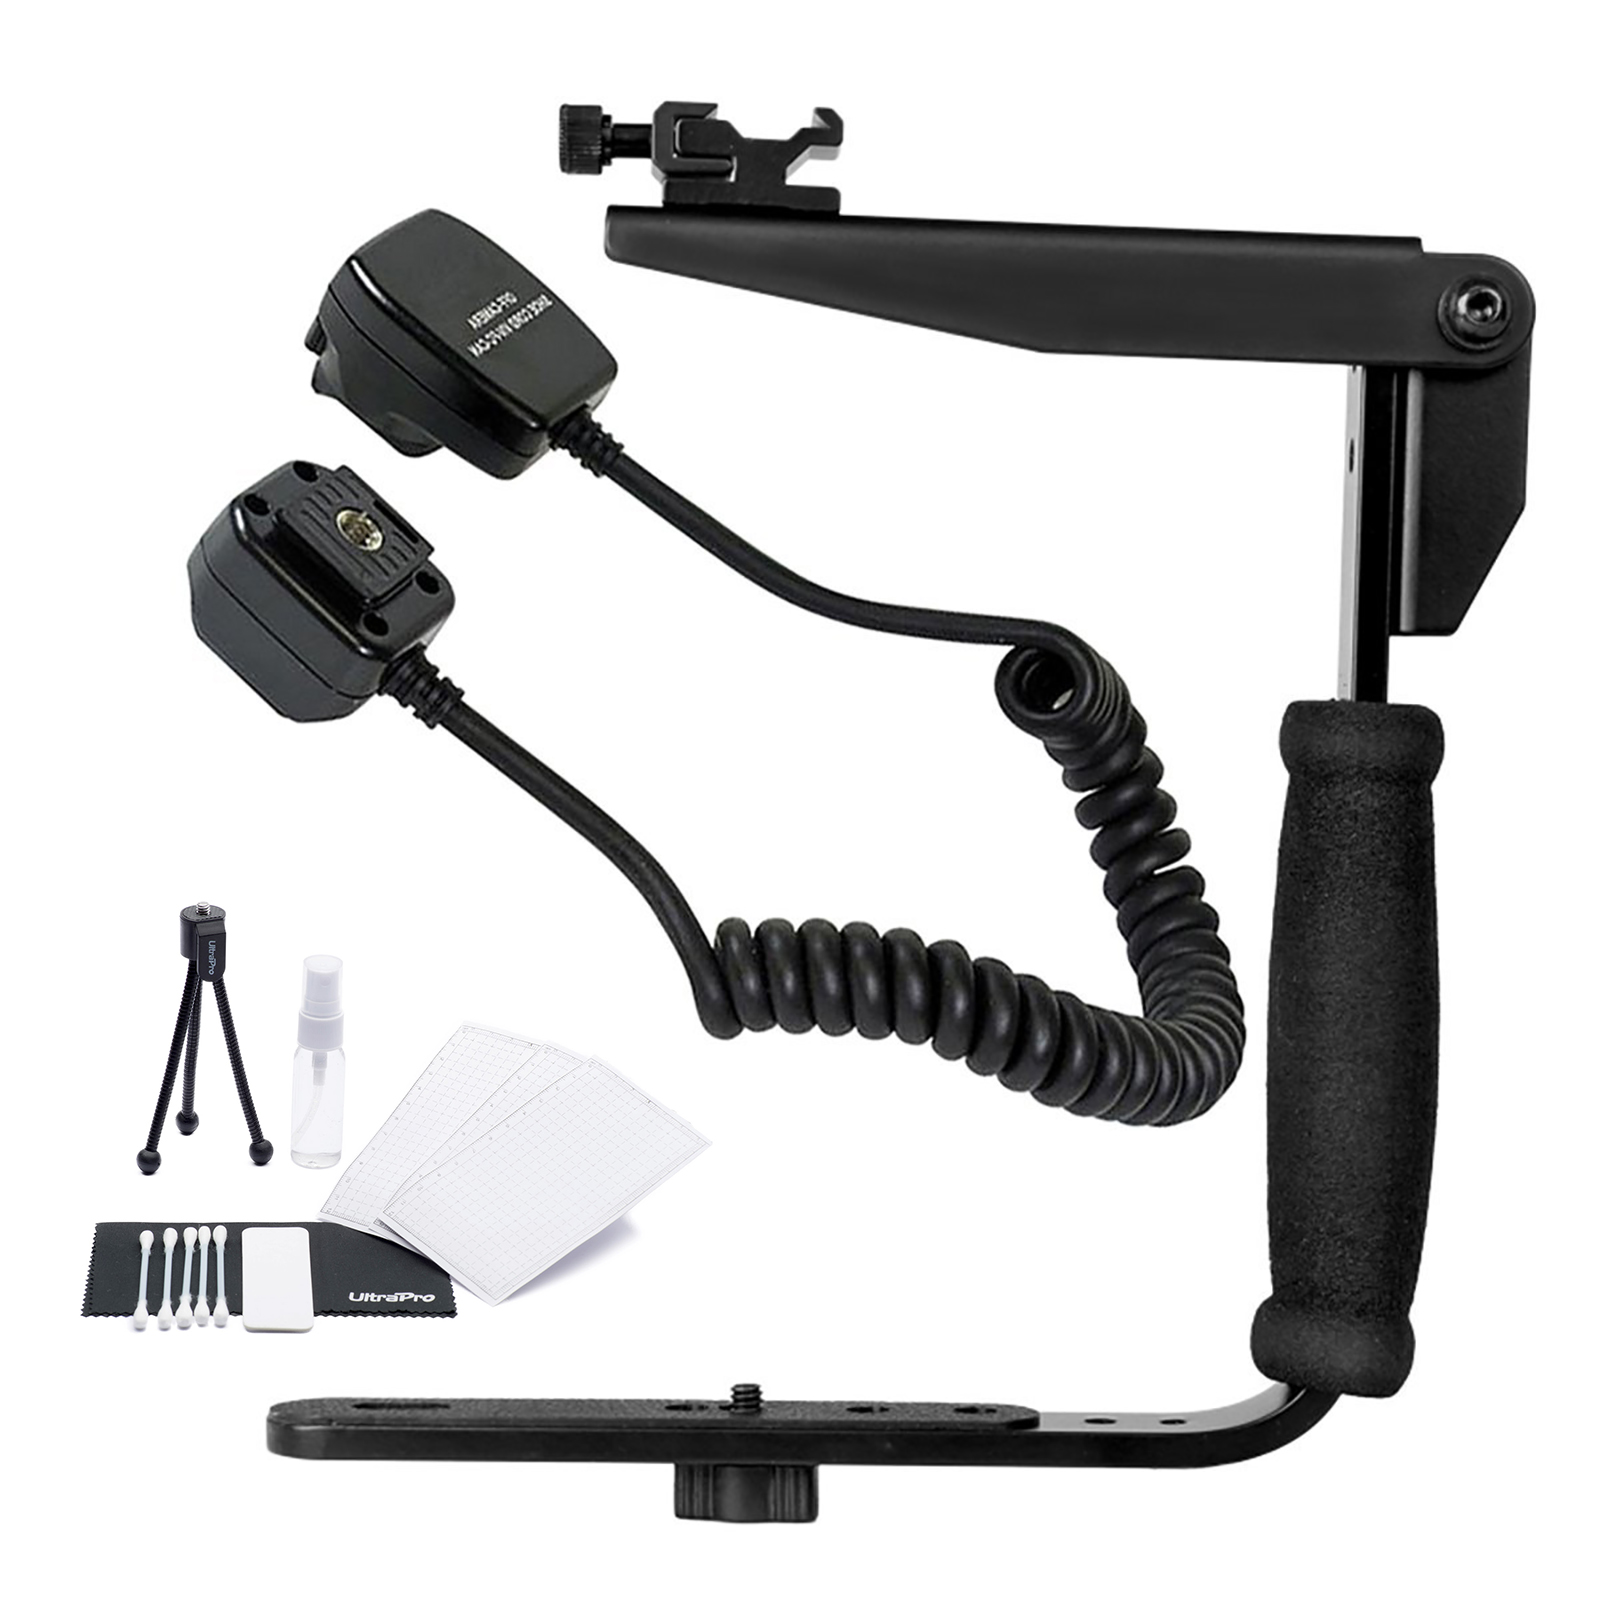 Rotating Flash Bracket Grip with Nikon SC-28, SC-29 Replacement Off Camera TTL Flash Cord for Select Nikon Digital SLRs. UltraPro Bundle Includes: Cleaning Kit, LCD Screen Protector, Mini Tripod